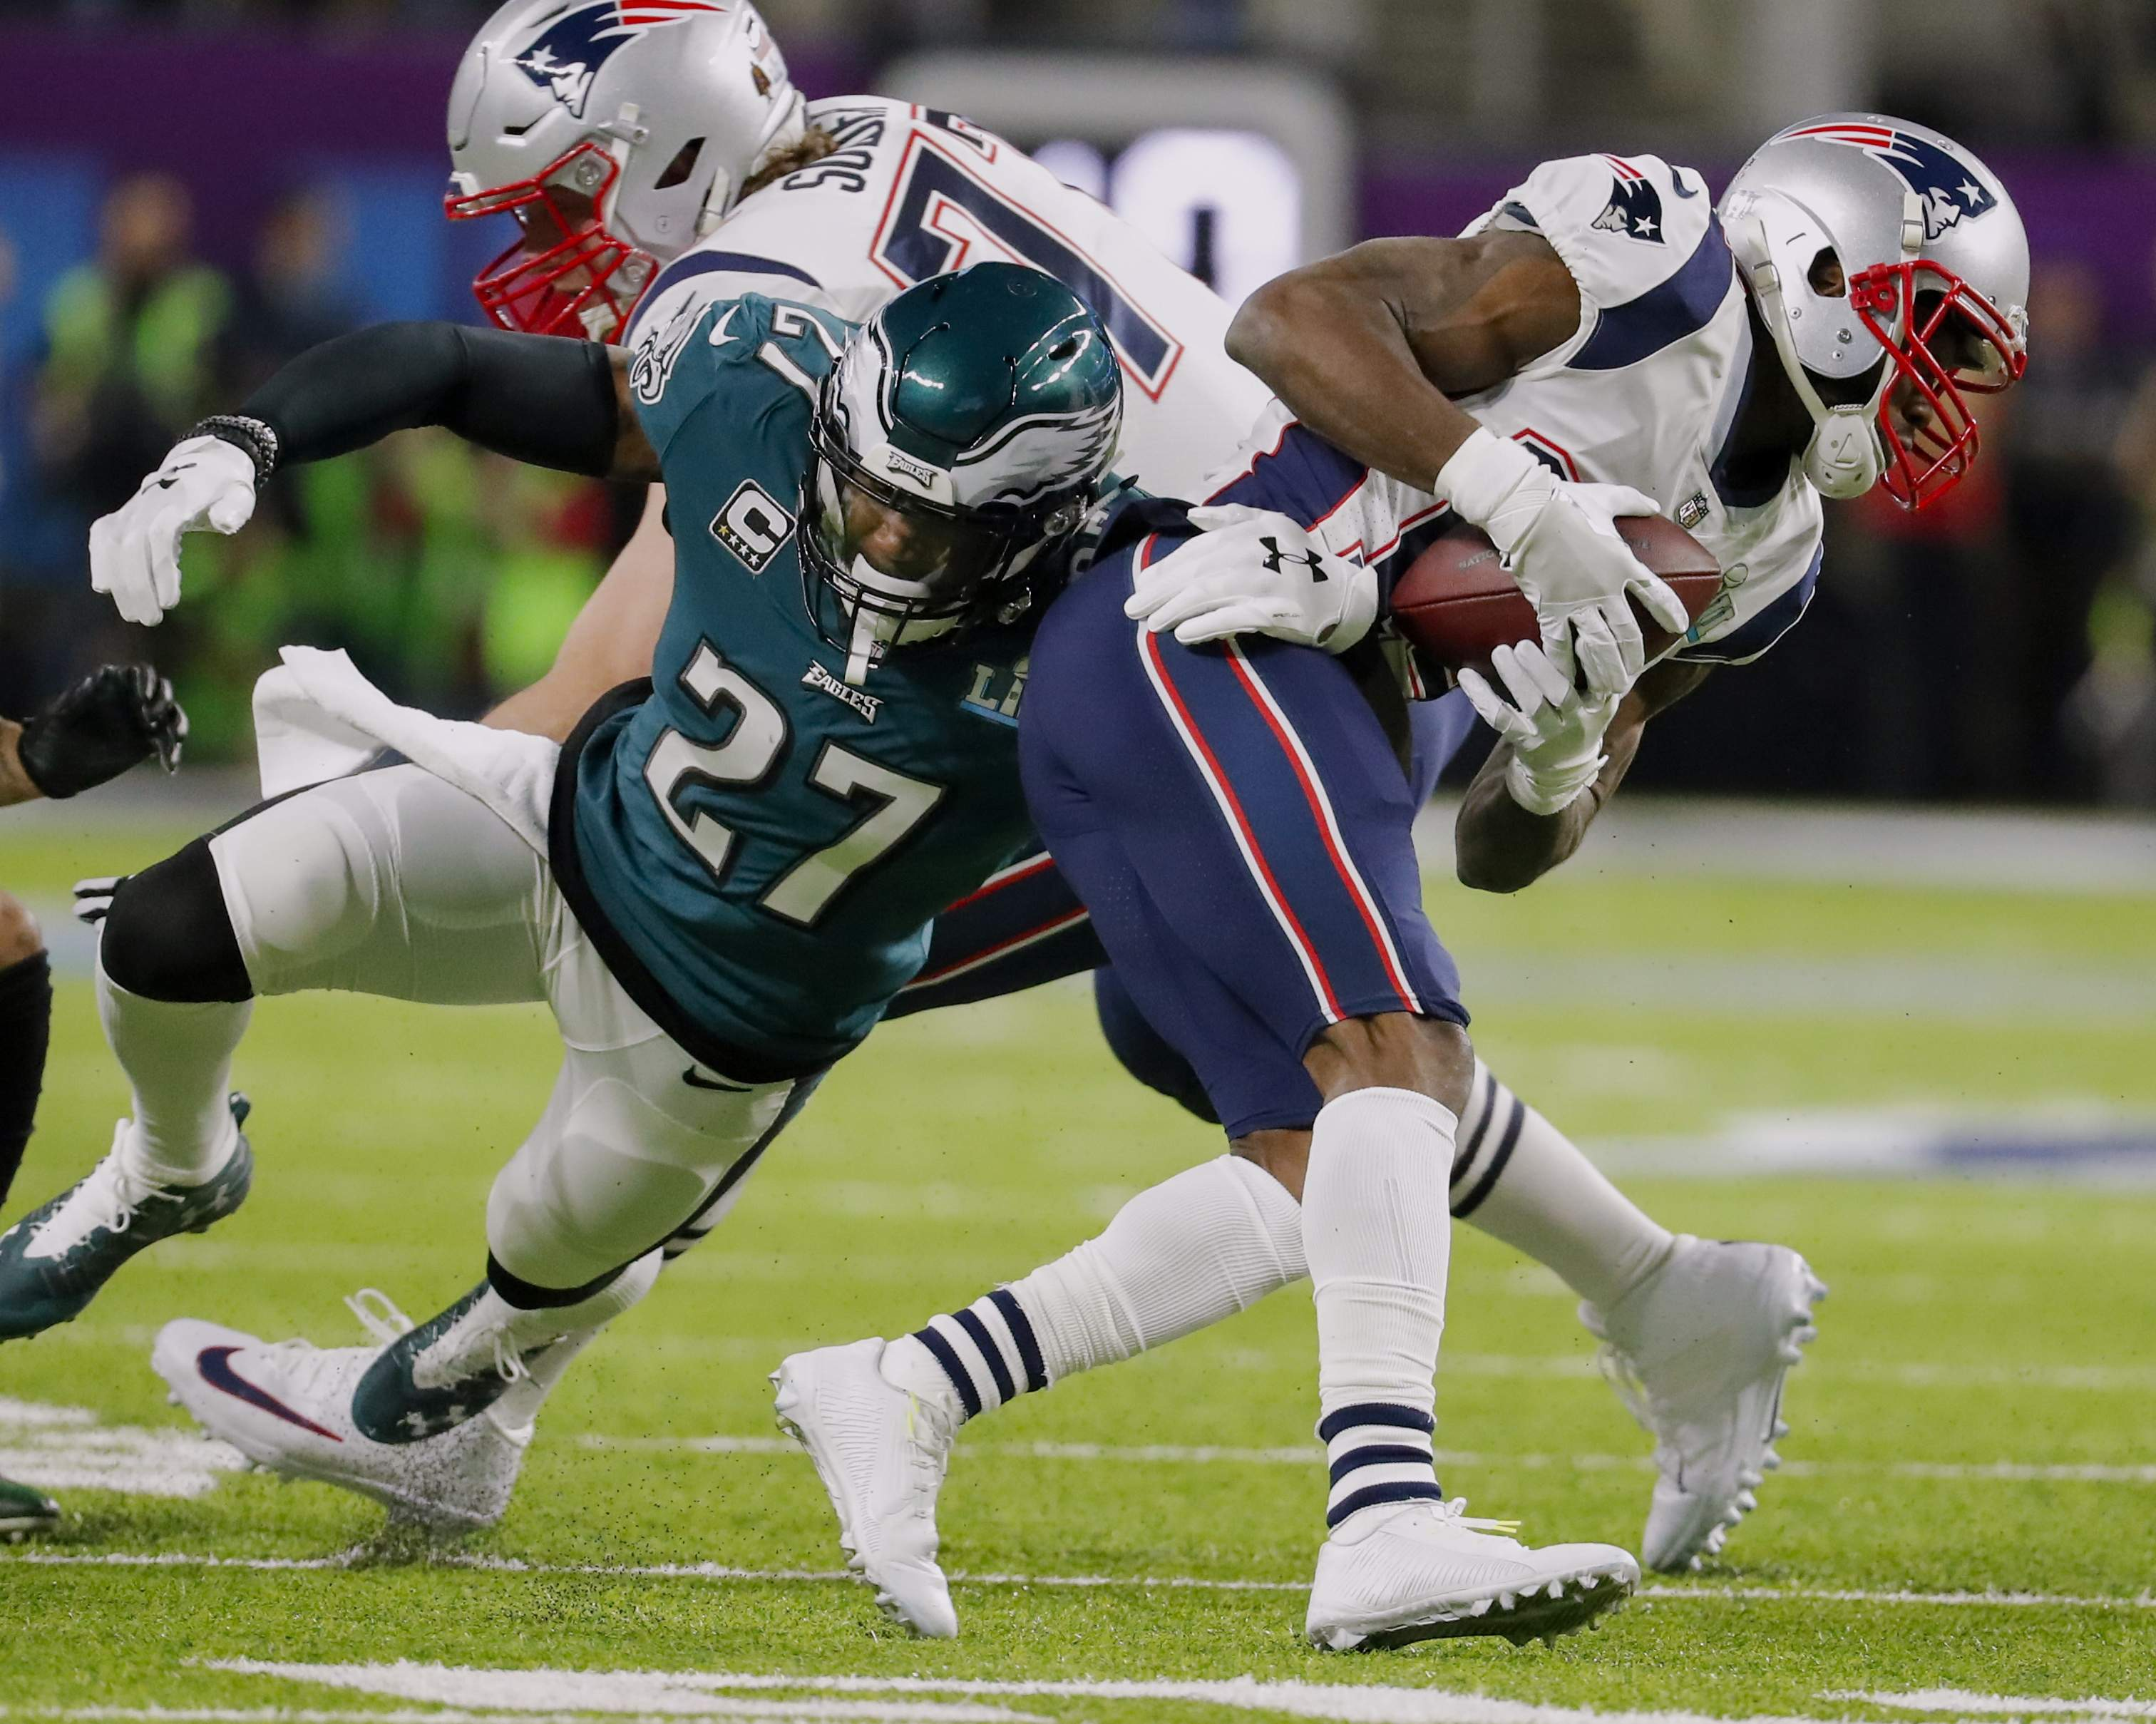 Philadelphia Eagles strong safety Malcolm Jenkins (27), tackles New England Patriots wide receiver Brandin Cooks (14), during the first half of the NFL Super Bowl 52 football game, Sunday, Feb. 4, 2018, in Minneapolis. (AP Photo/Charlie Neibergall)